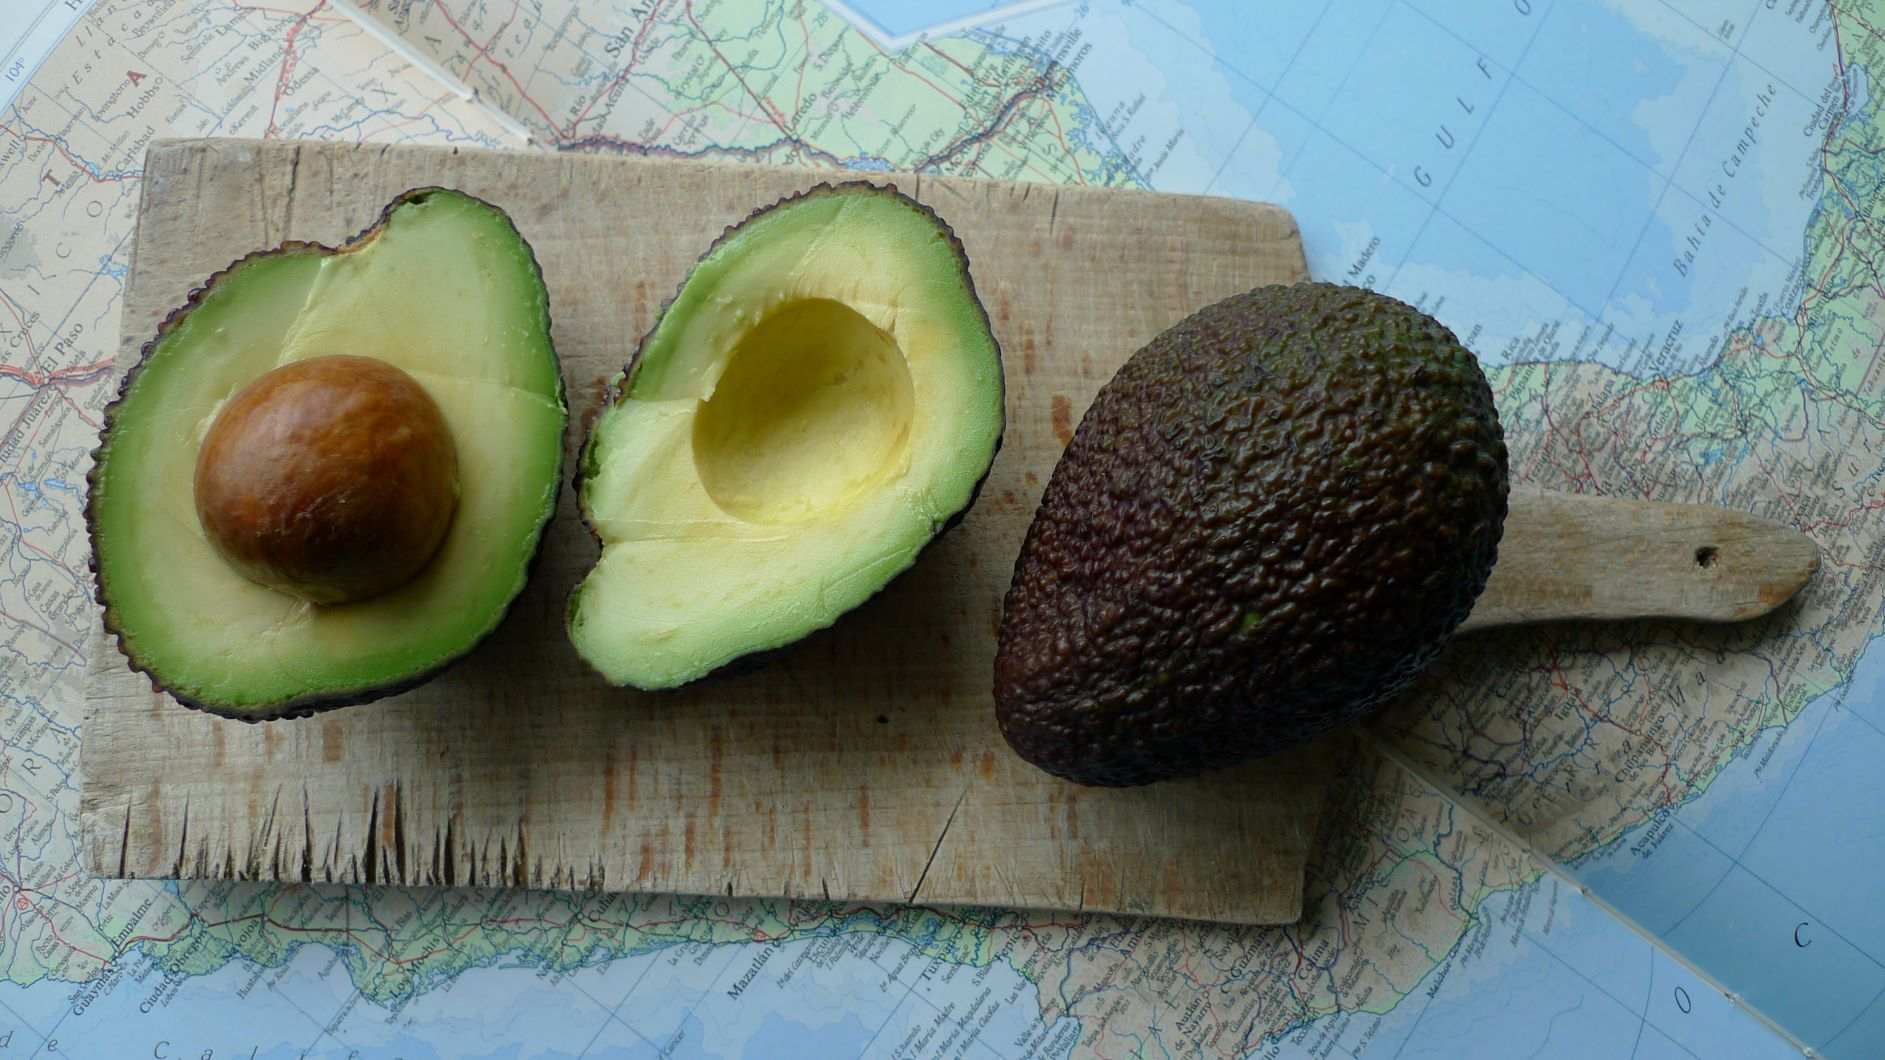 History of the Avocado